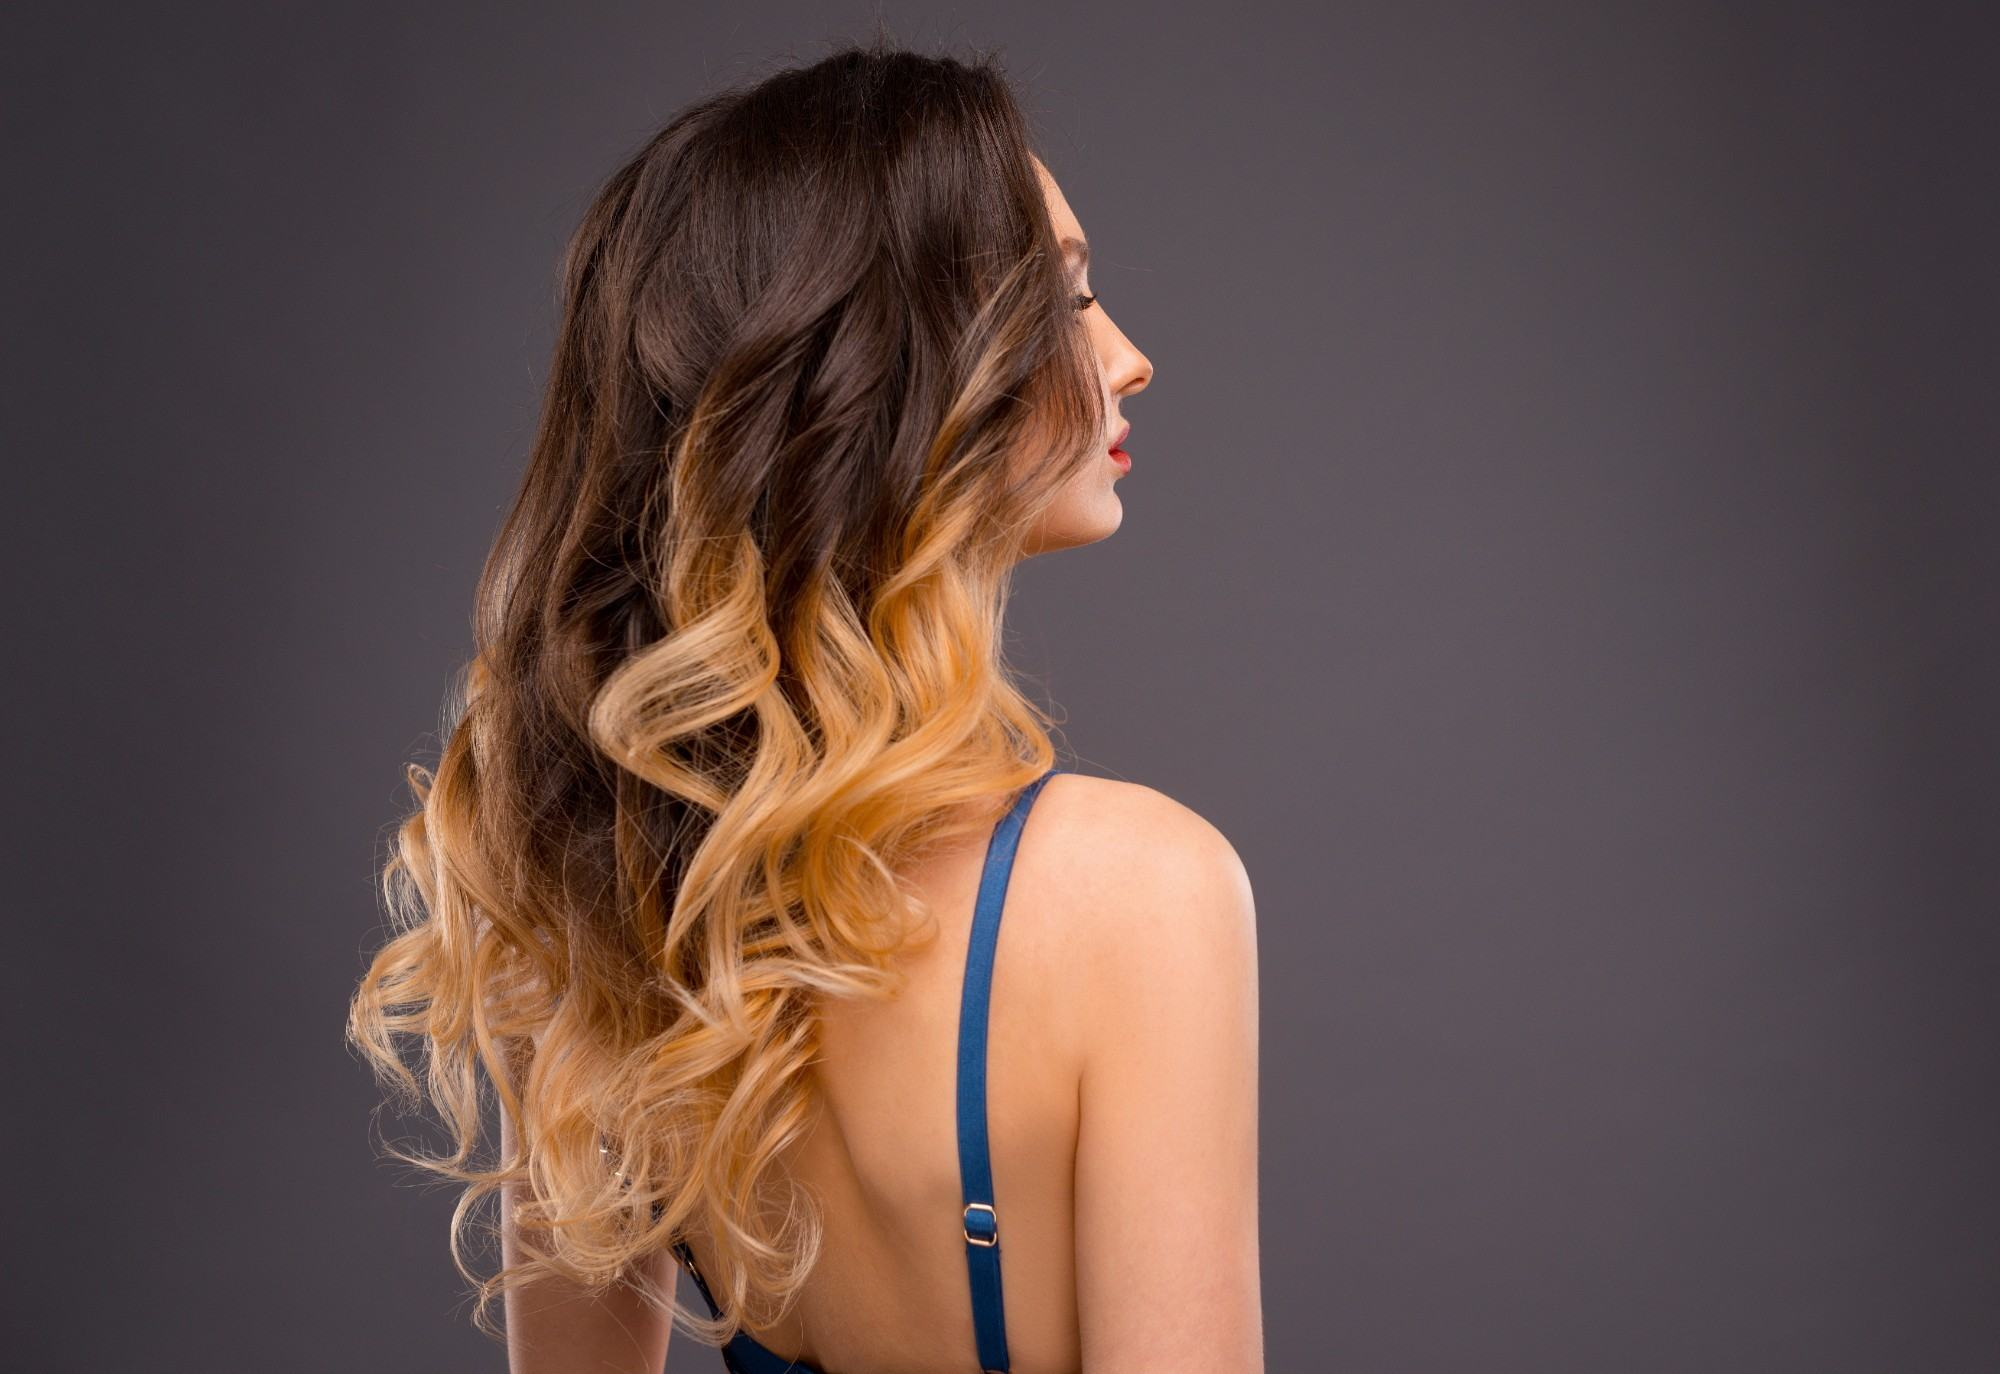 Get Your Original Hair Color Back With These Tips